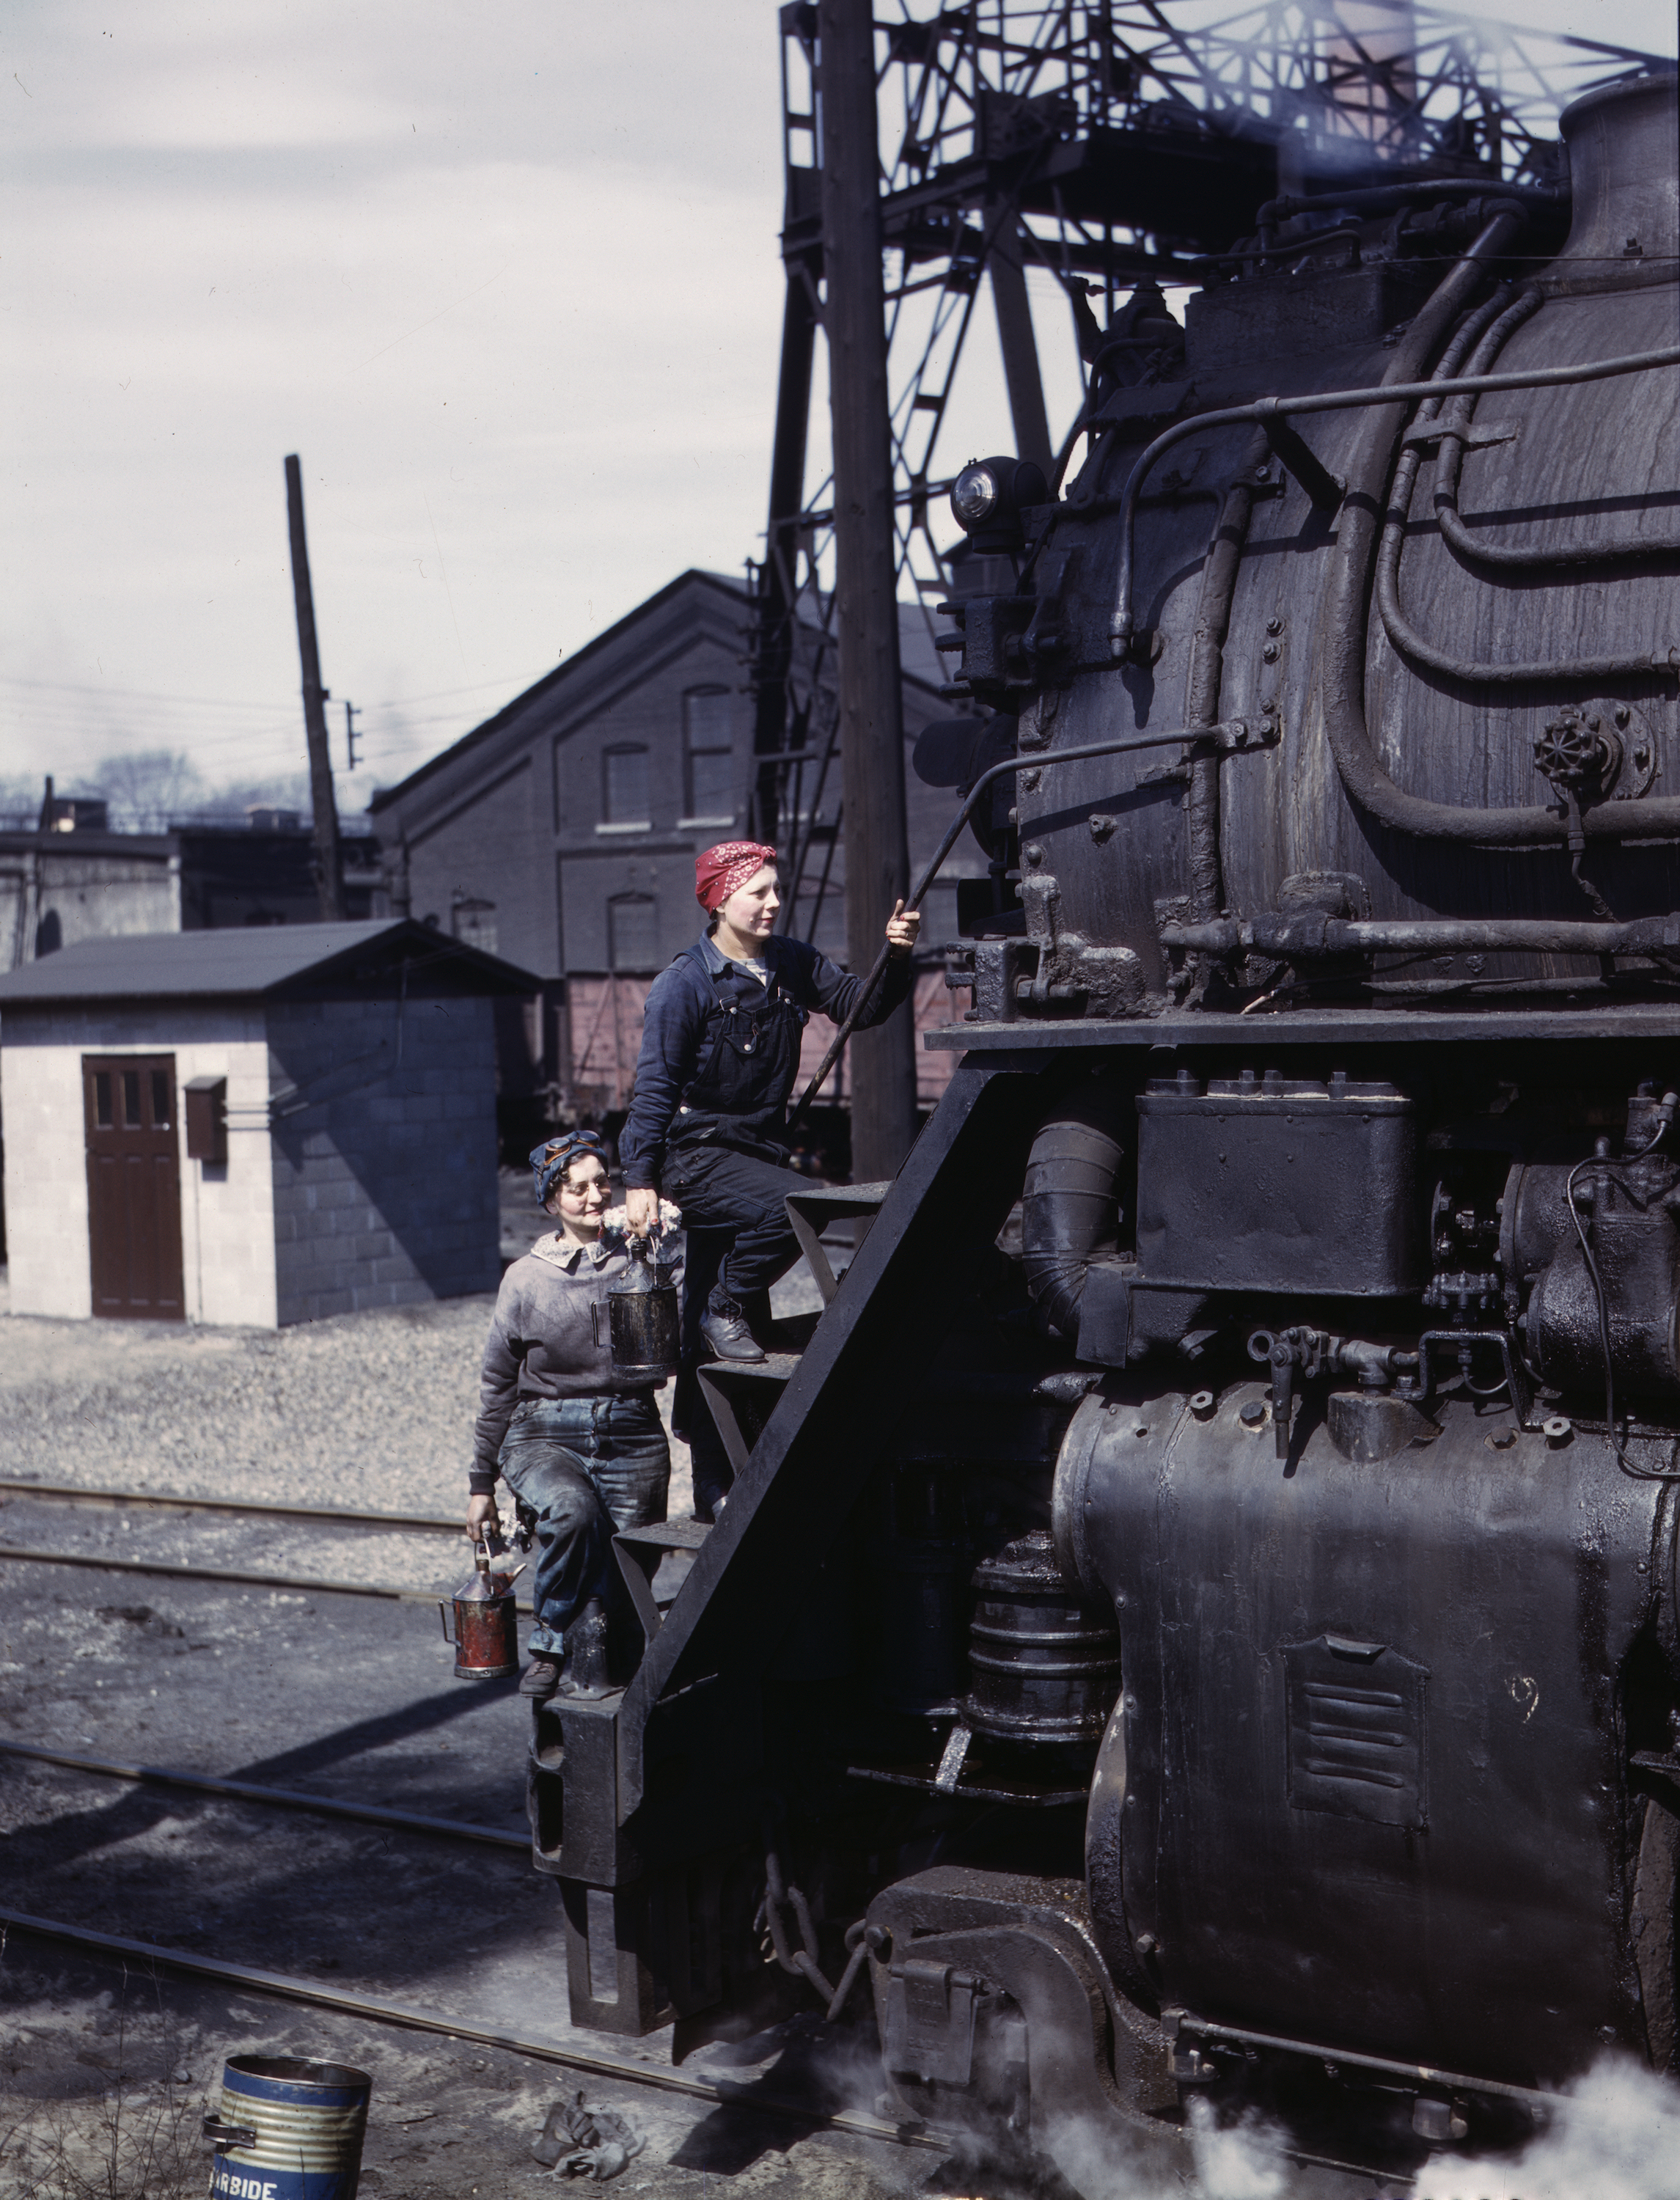 Women Railroad Workers Clean Giant Locomotive